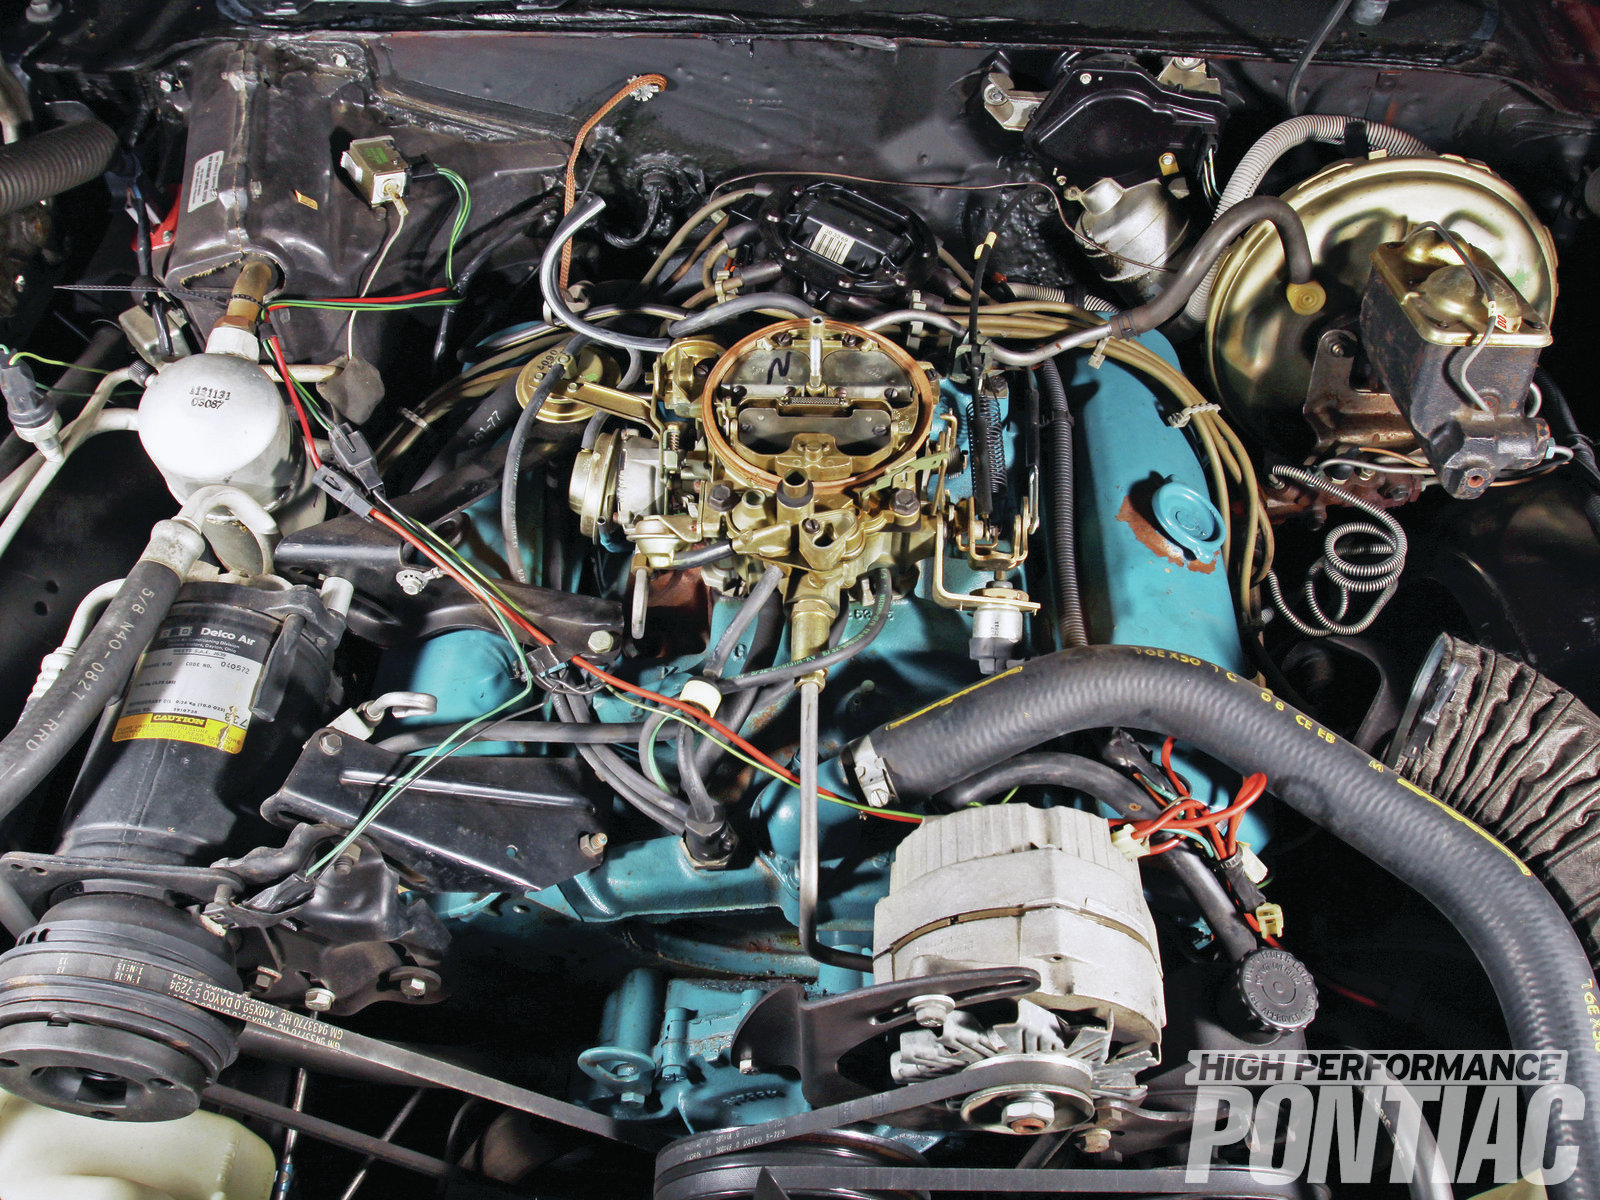 1977 Pontiac Firebird Wiring Diagram